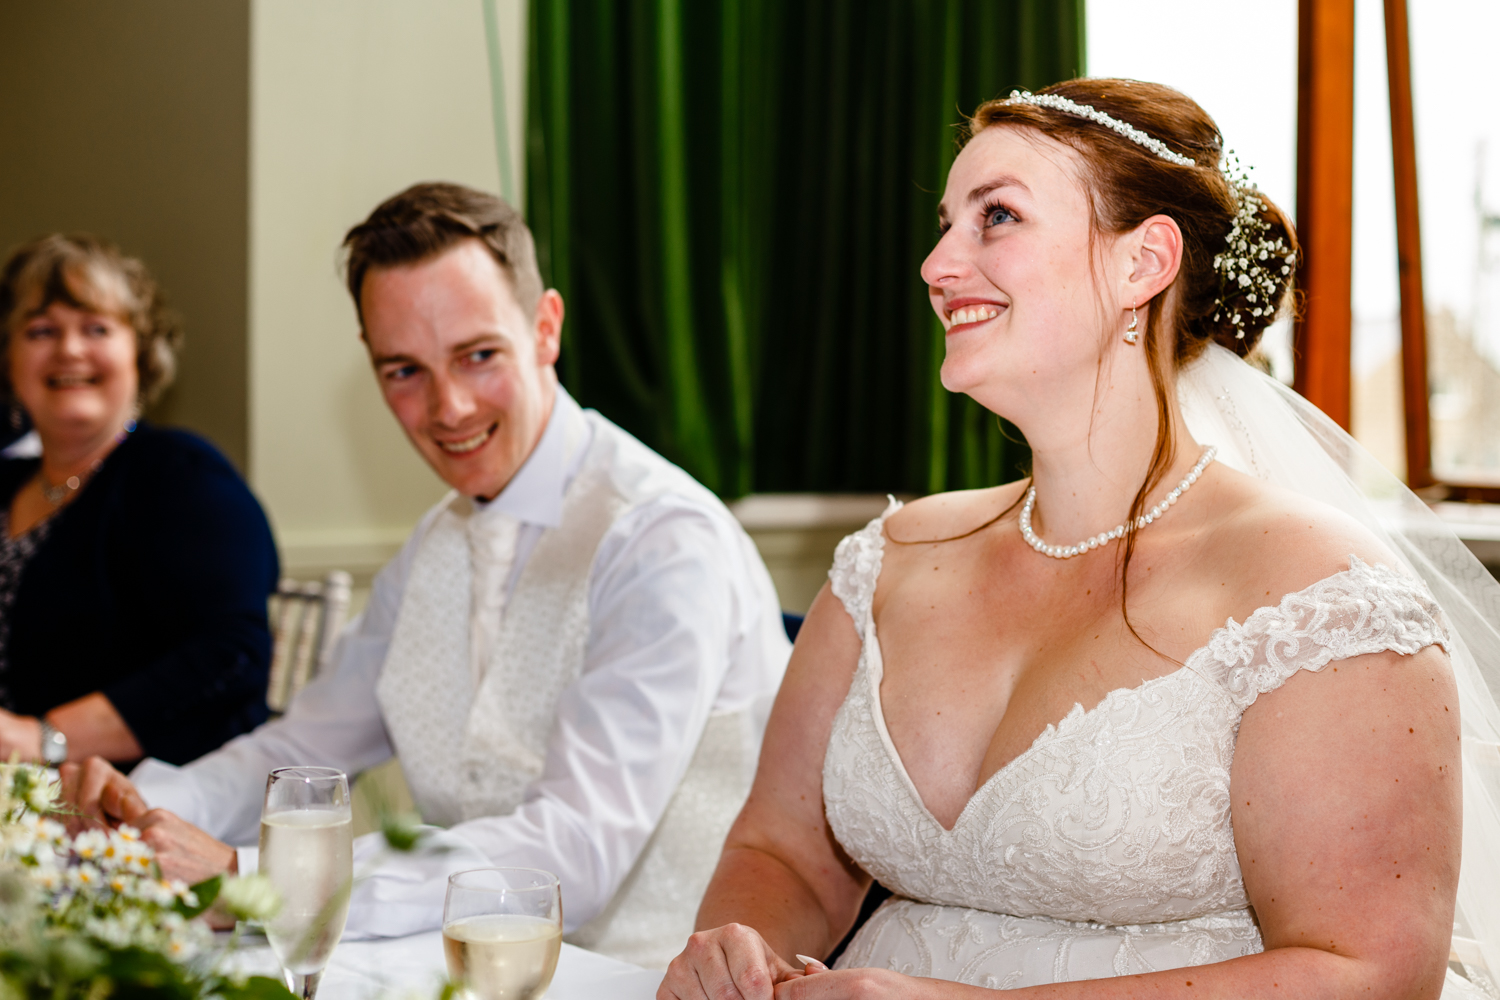 Lancashire-wedding-photographer-adele-and-alex-103.jpg